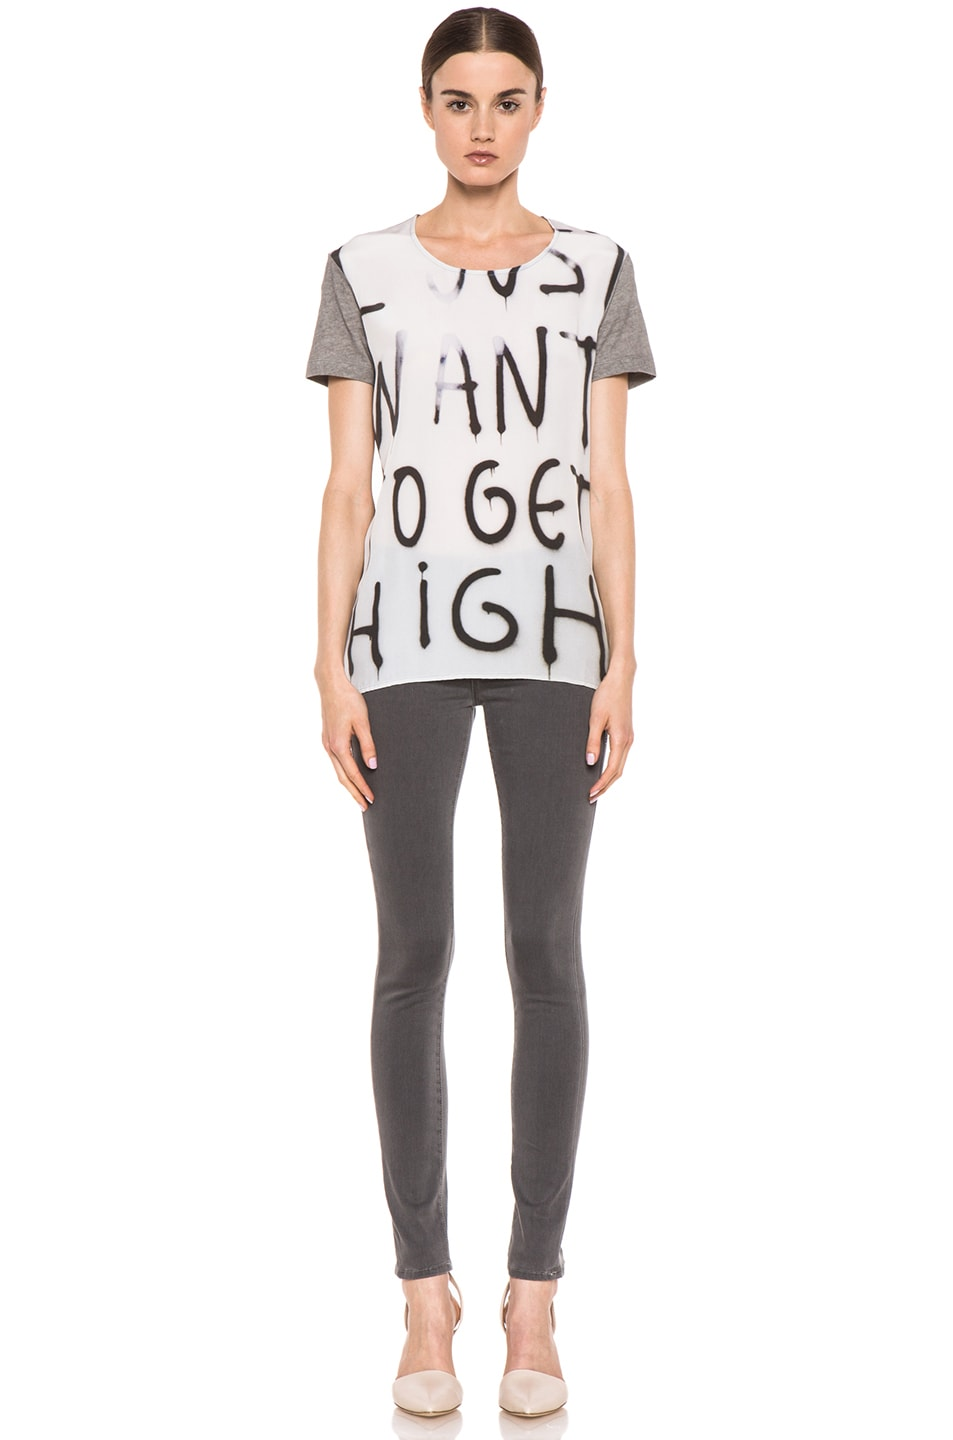 Image 5 of EACH x OTHER By Thomas Lelu Unique 'Want to Get High' Tee in Grey